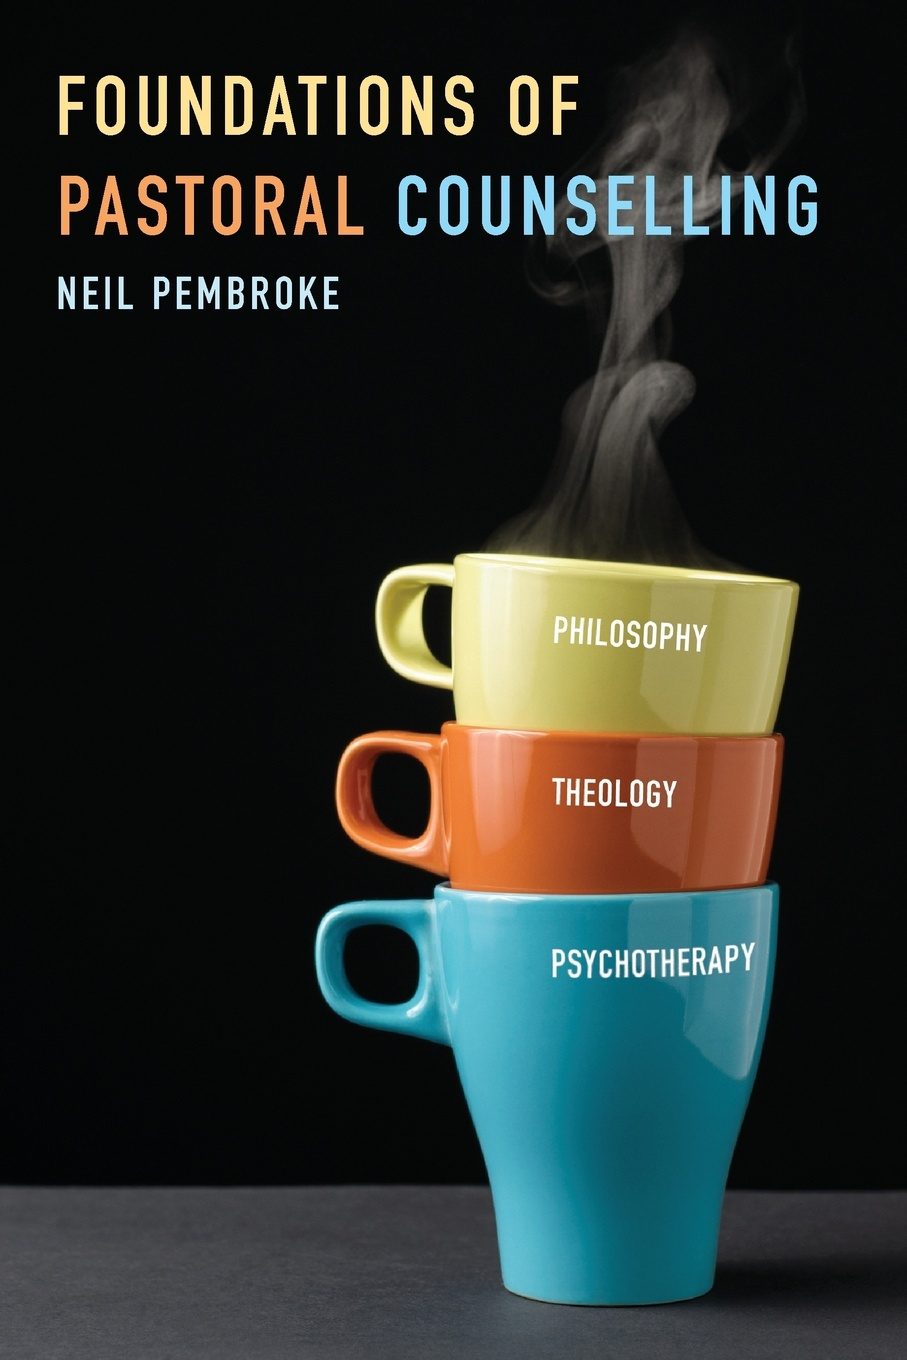 Neil Pembroke Foundations of Pastoral Counselling. Integrating Philosophy, Theology, and Psychotherapy martin milton therapy and beyond counselling psychology contributions to therapeutic and social issues